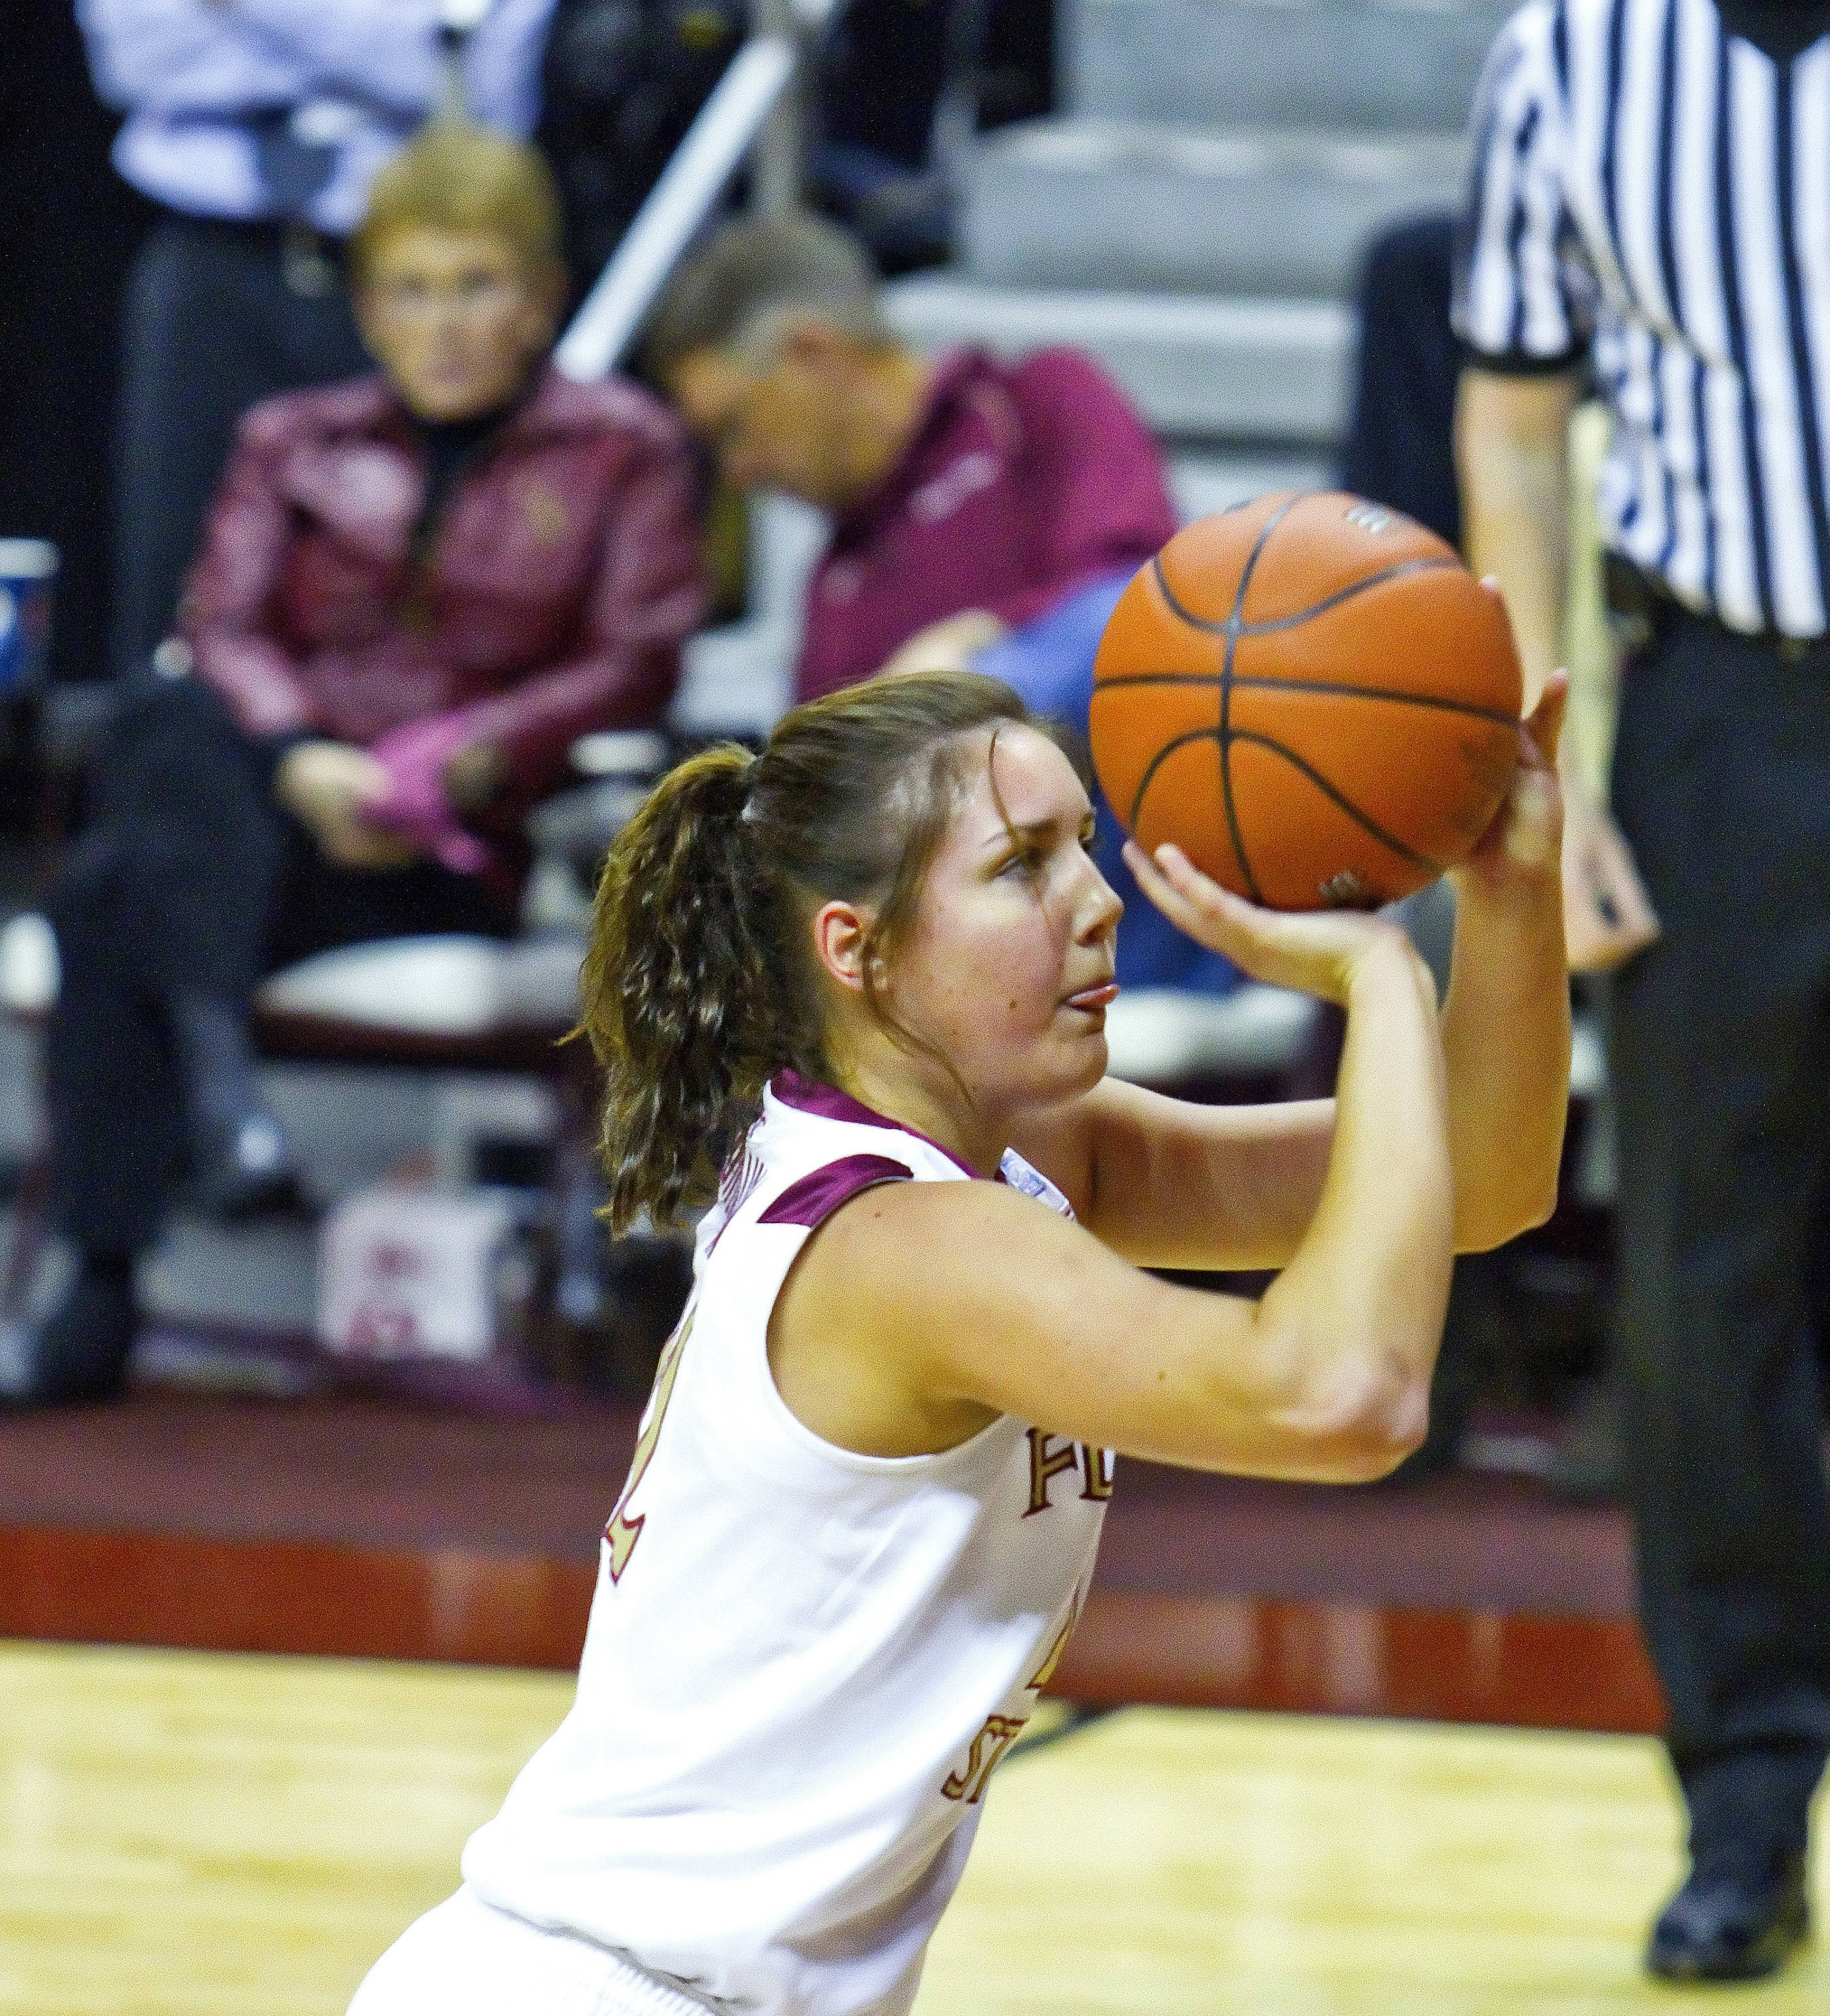 FSU vs Jacksonville State - 12/12/10 - Olivia Bresnahan (22)#$%^Photo by Steve Musco